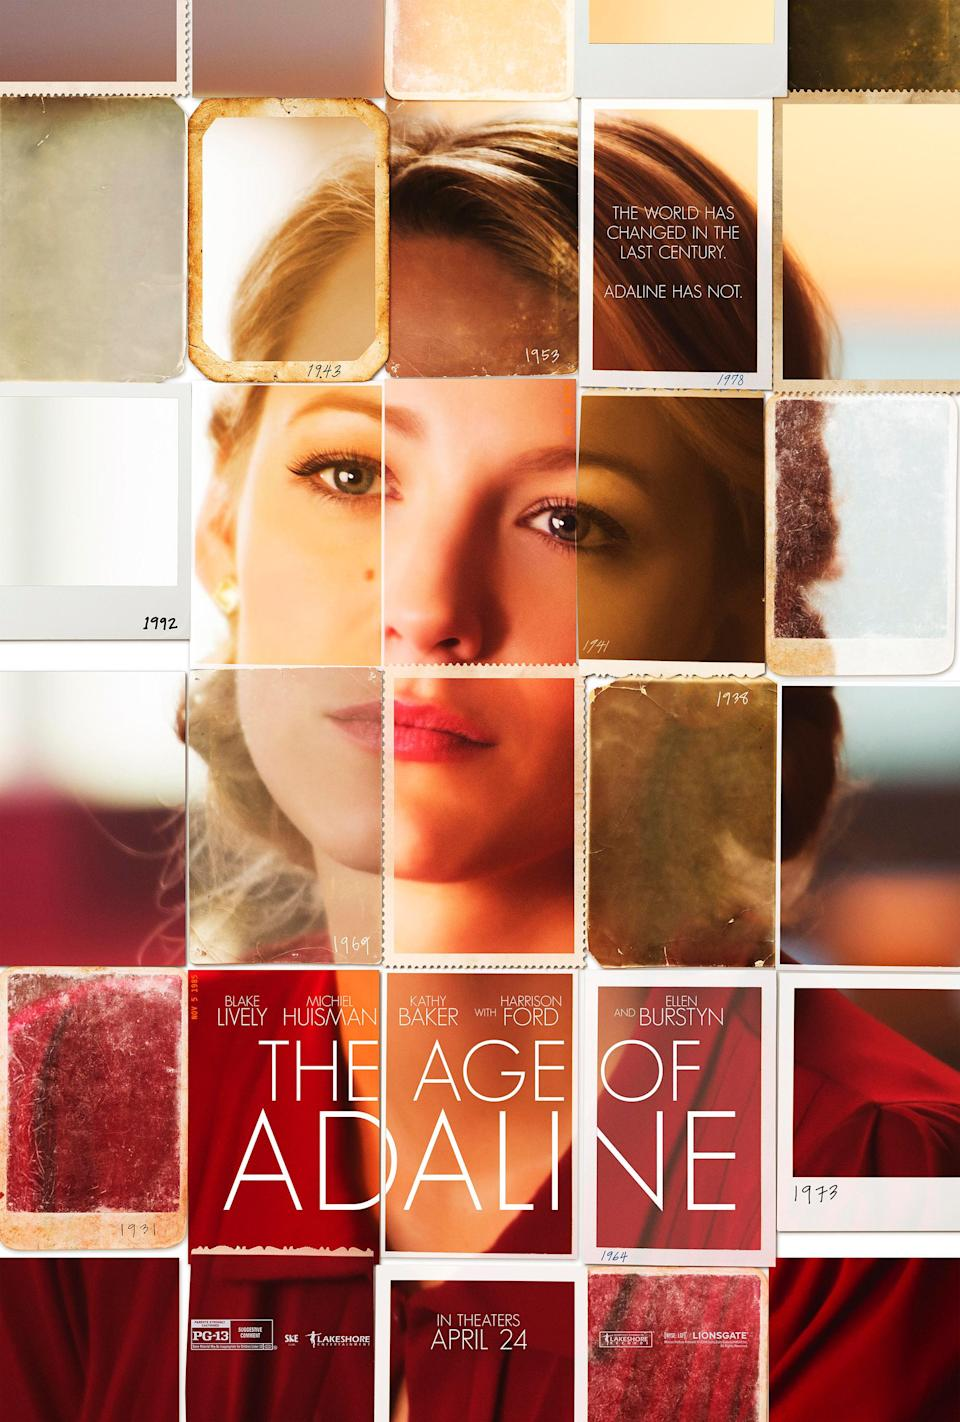 Adaline with Blake Lively